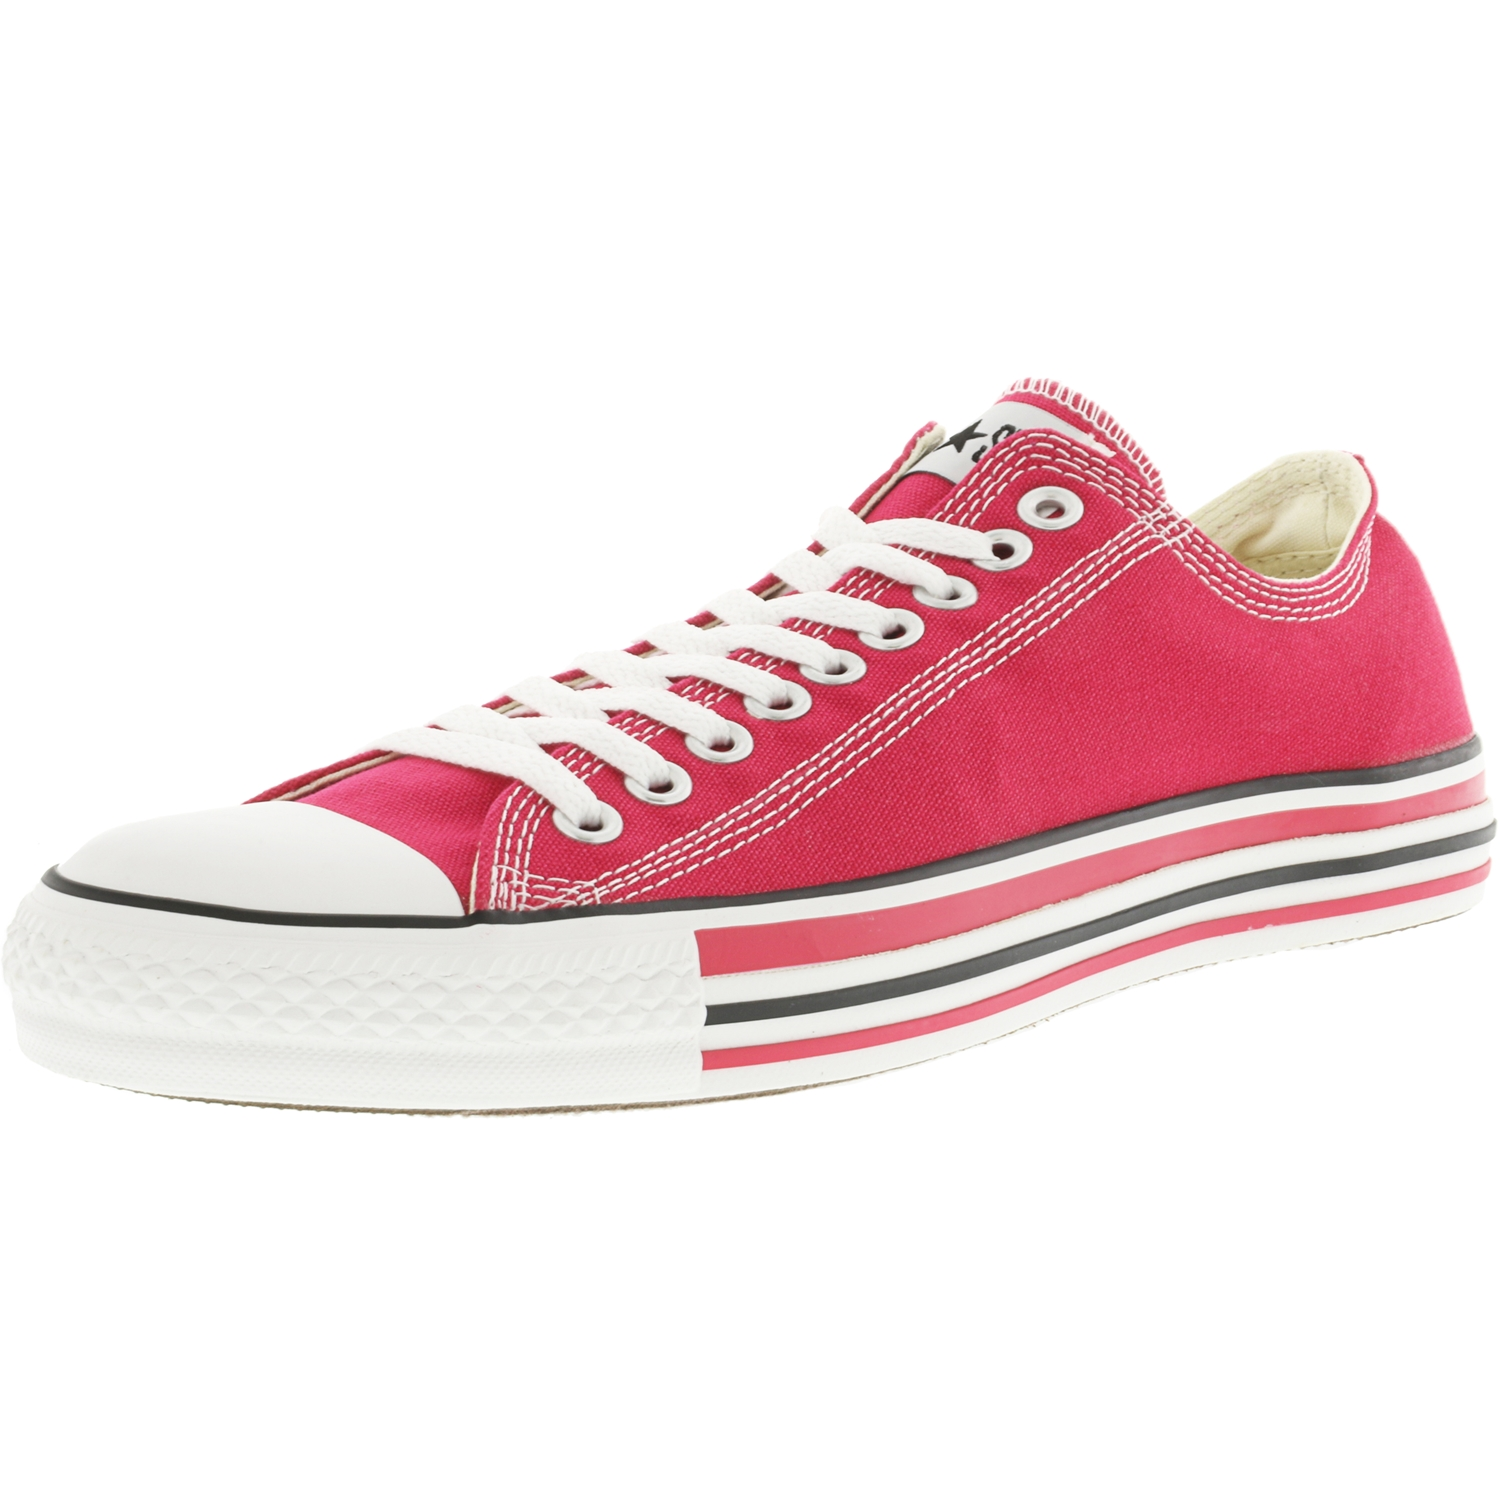 Converse Chuck Taylor Details Oxford Raspberry / White Ankle-High Canvas Fashion Sneaker - 13M 11M